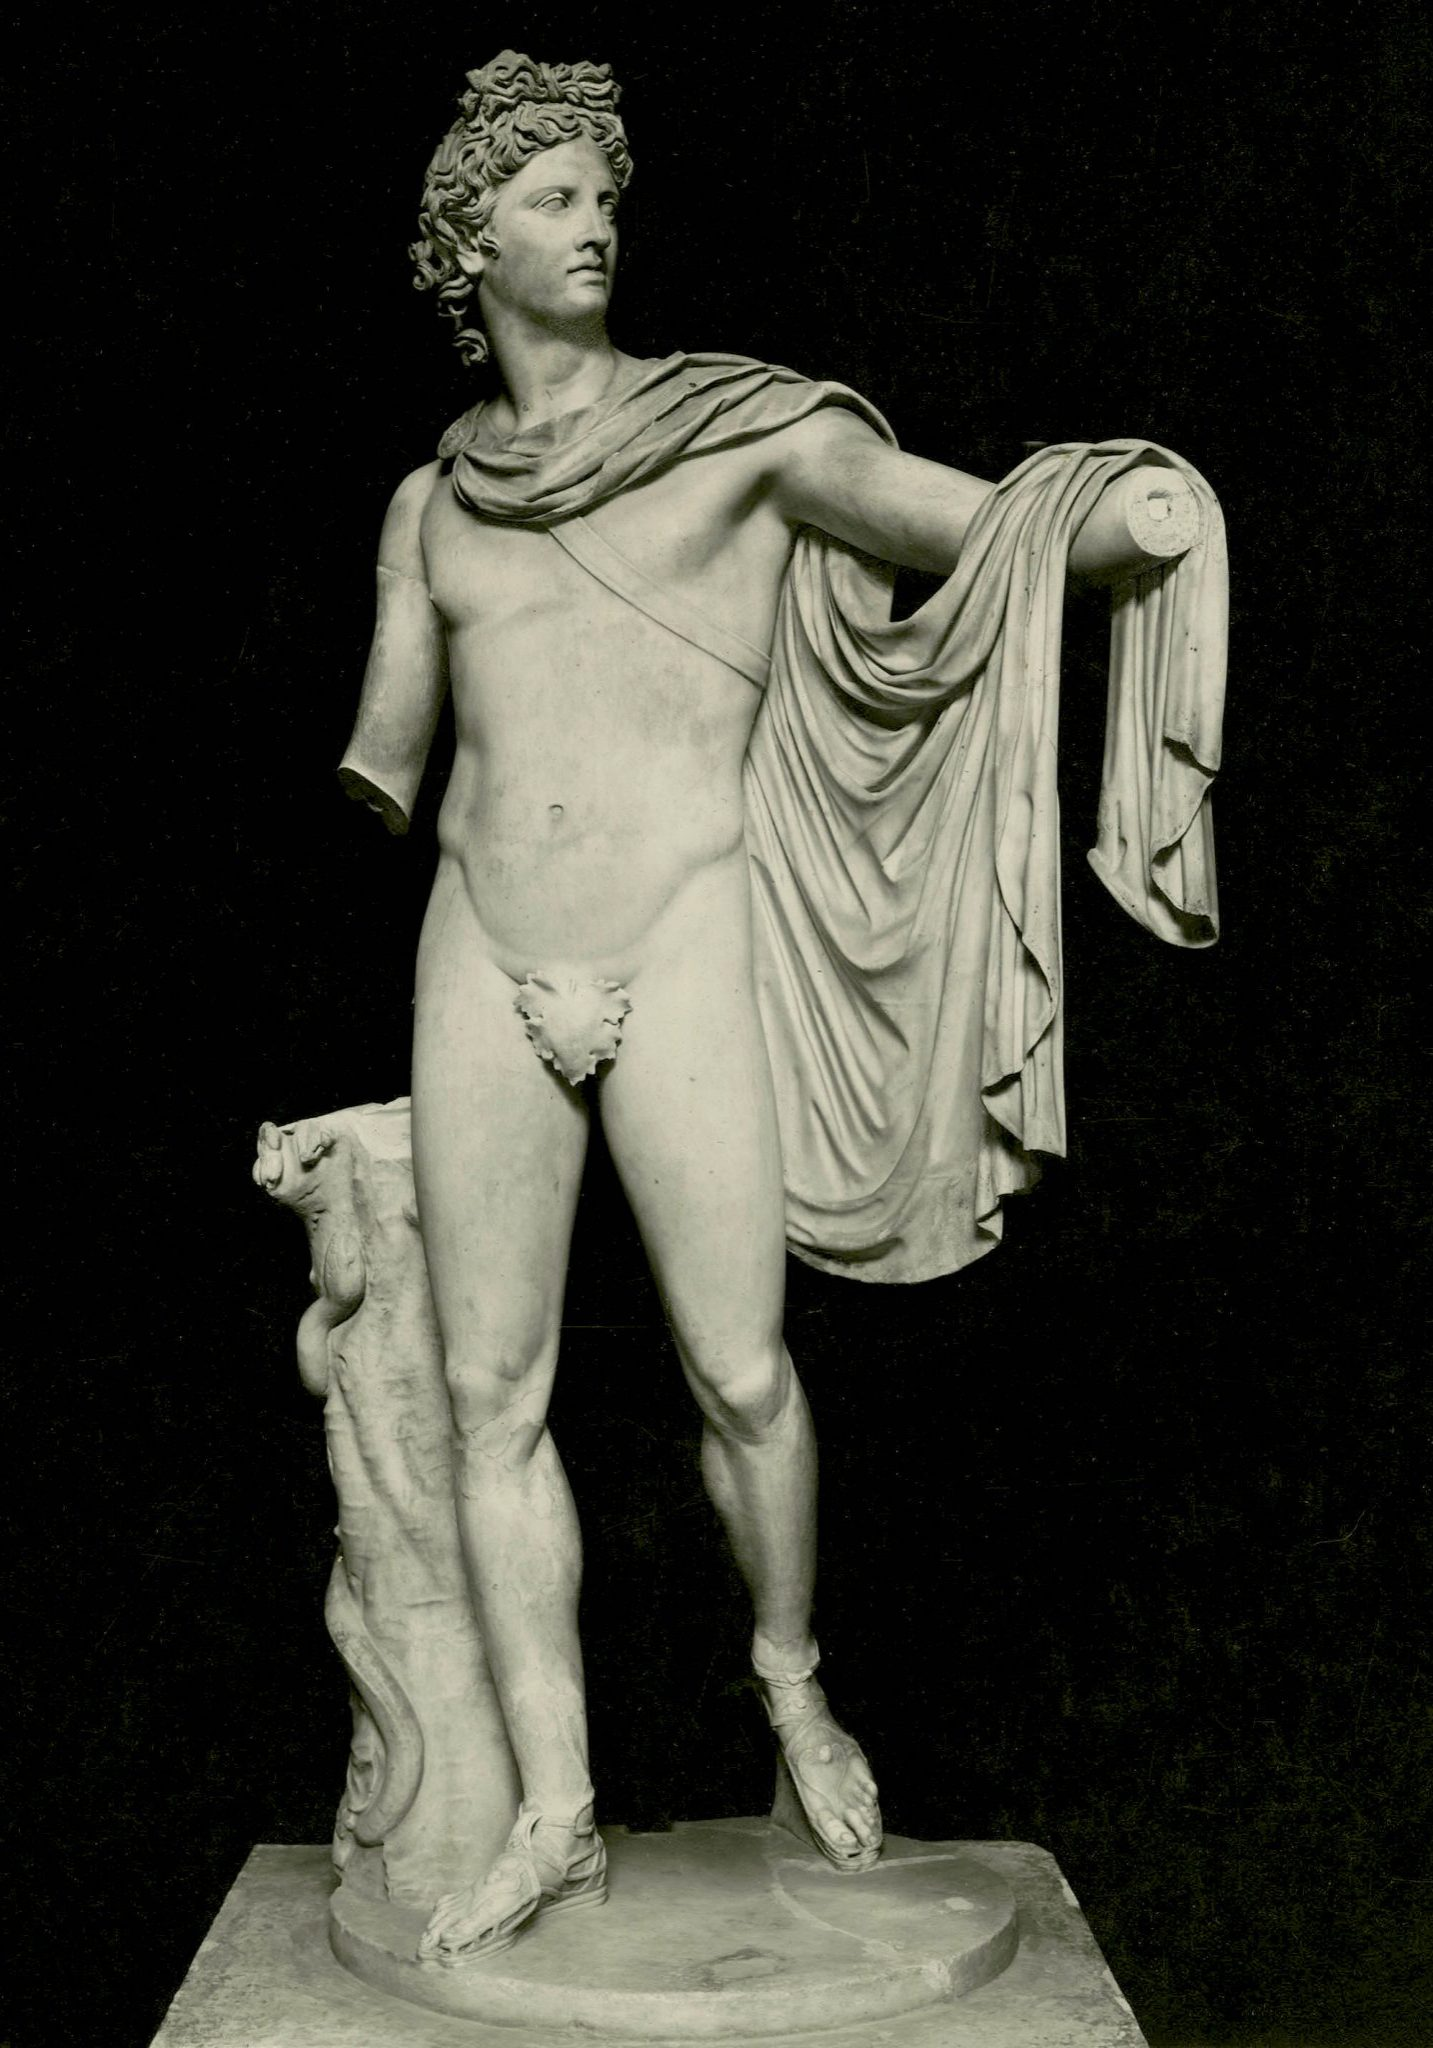 <p><i>The Apollo Belvedere.</i></p><p>Roman copy after original bronze c. 330 BCE</p><p>attributed to Leochares. Marble.</p><p>Museo Pio-Clementino, Vatican City.</p>